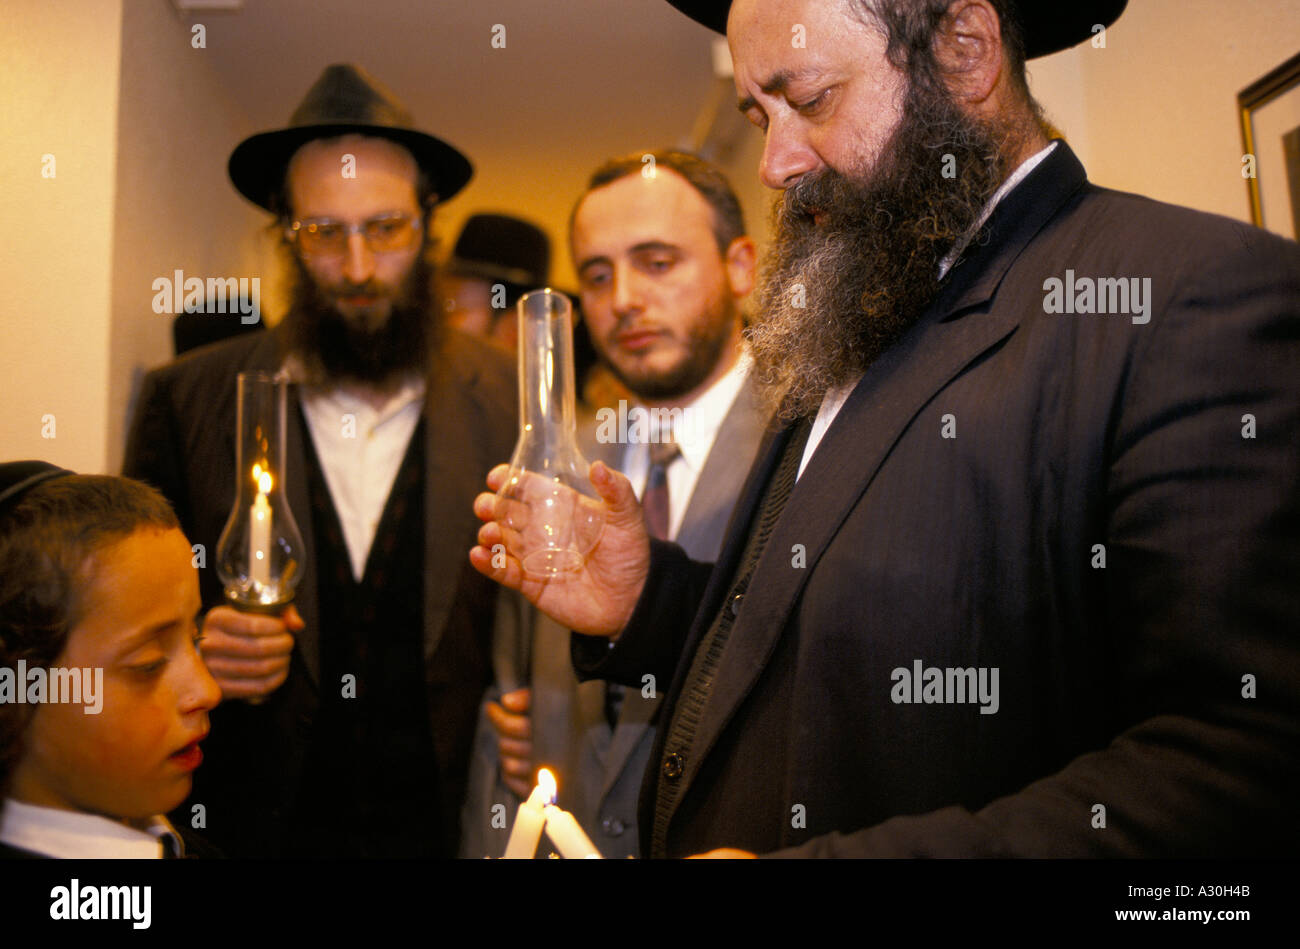 An Orthodox Jewish Rabbi lighting candles with a boy at a Jewish Wedding in Jerusalem Israel  sc 1 st  Alamy & An Orthodox Jewish Rabbi lighting candles with a boy at a Jewish ... azcodes.com